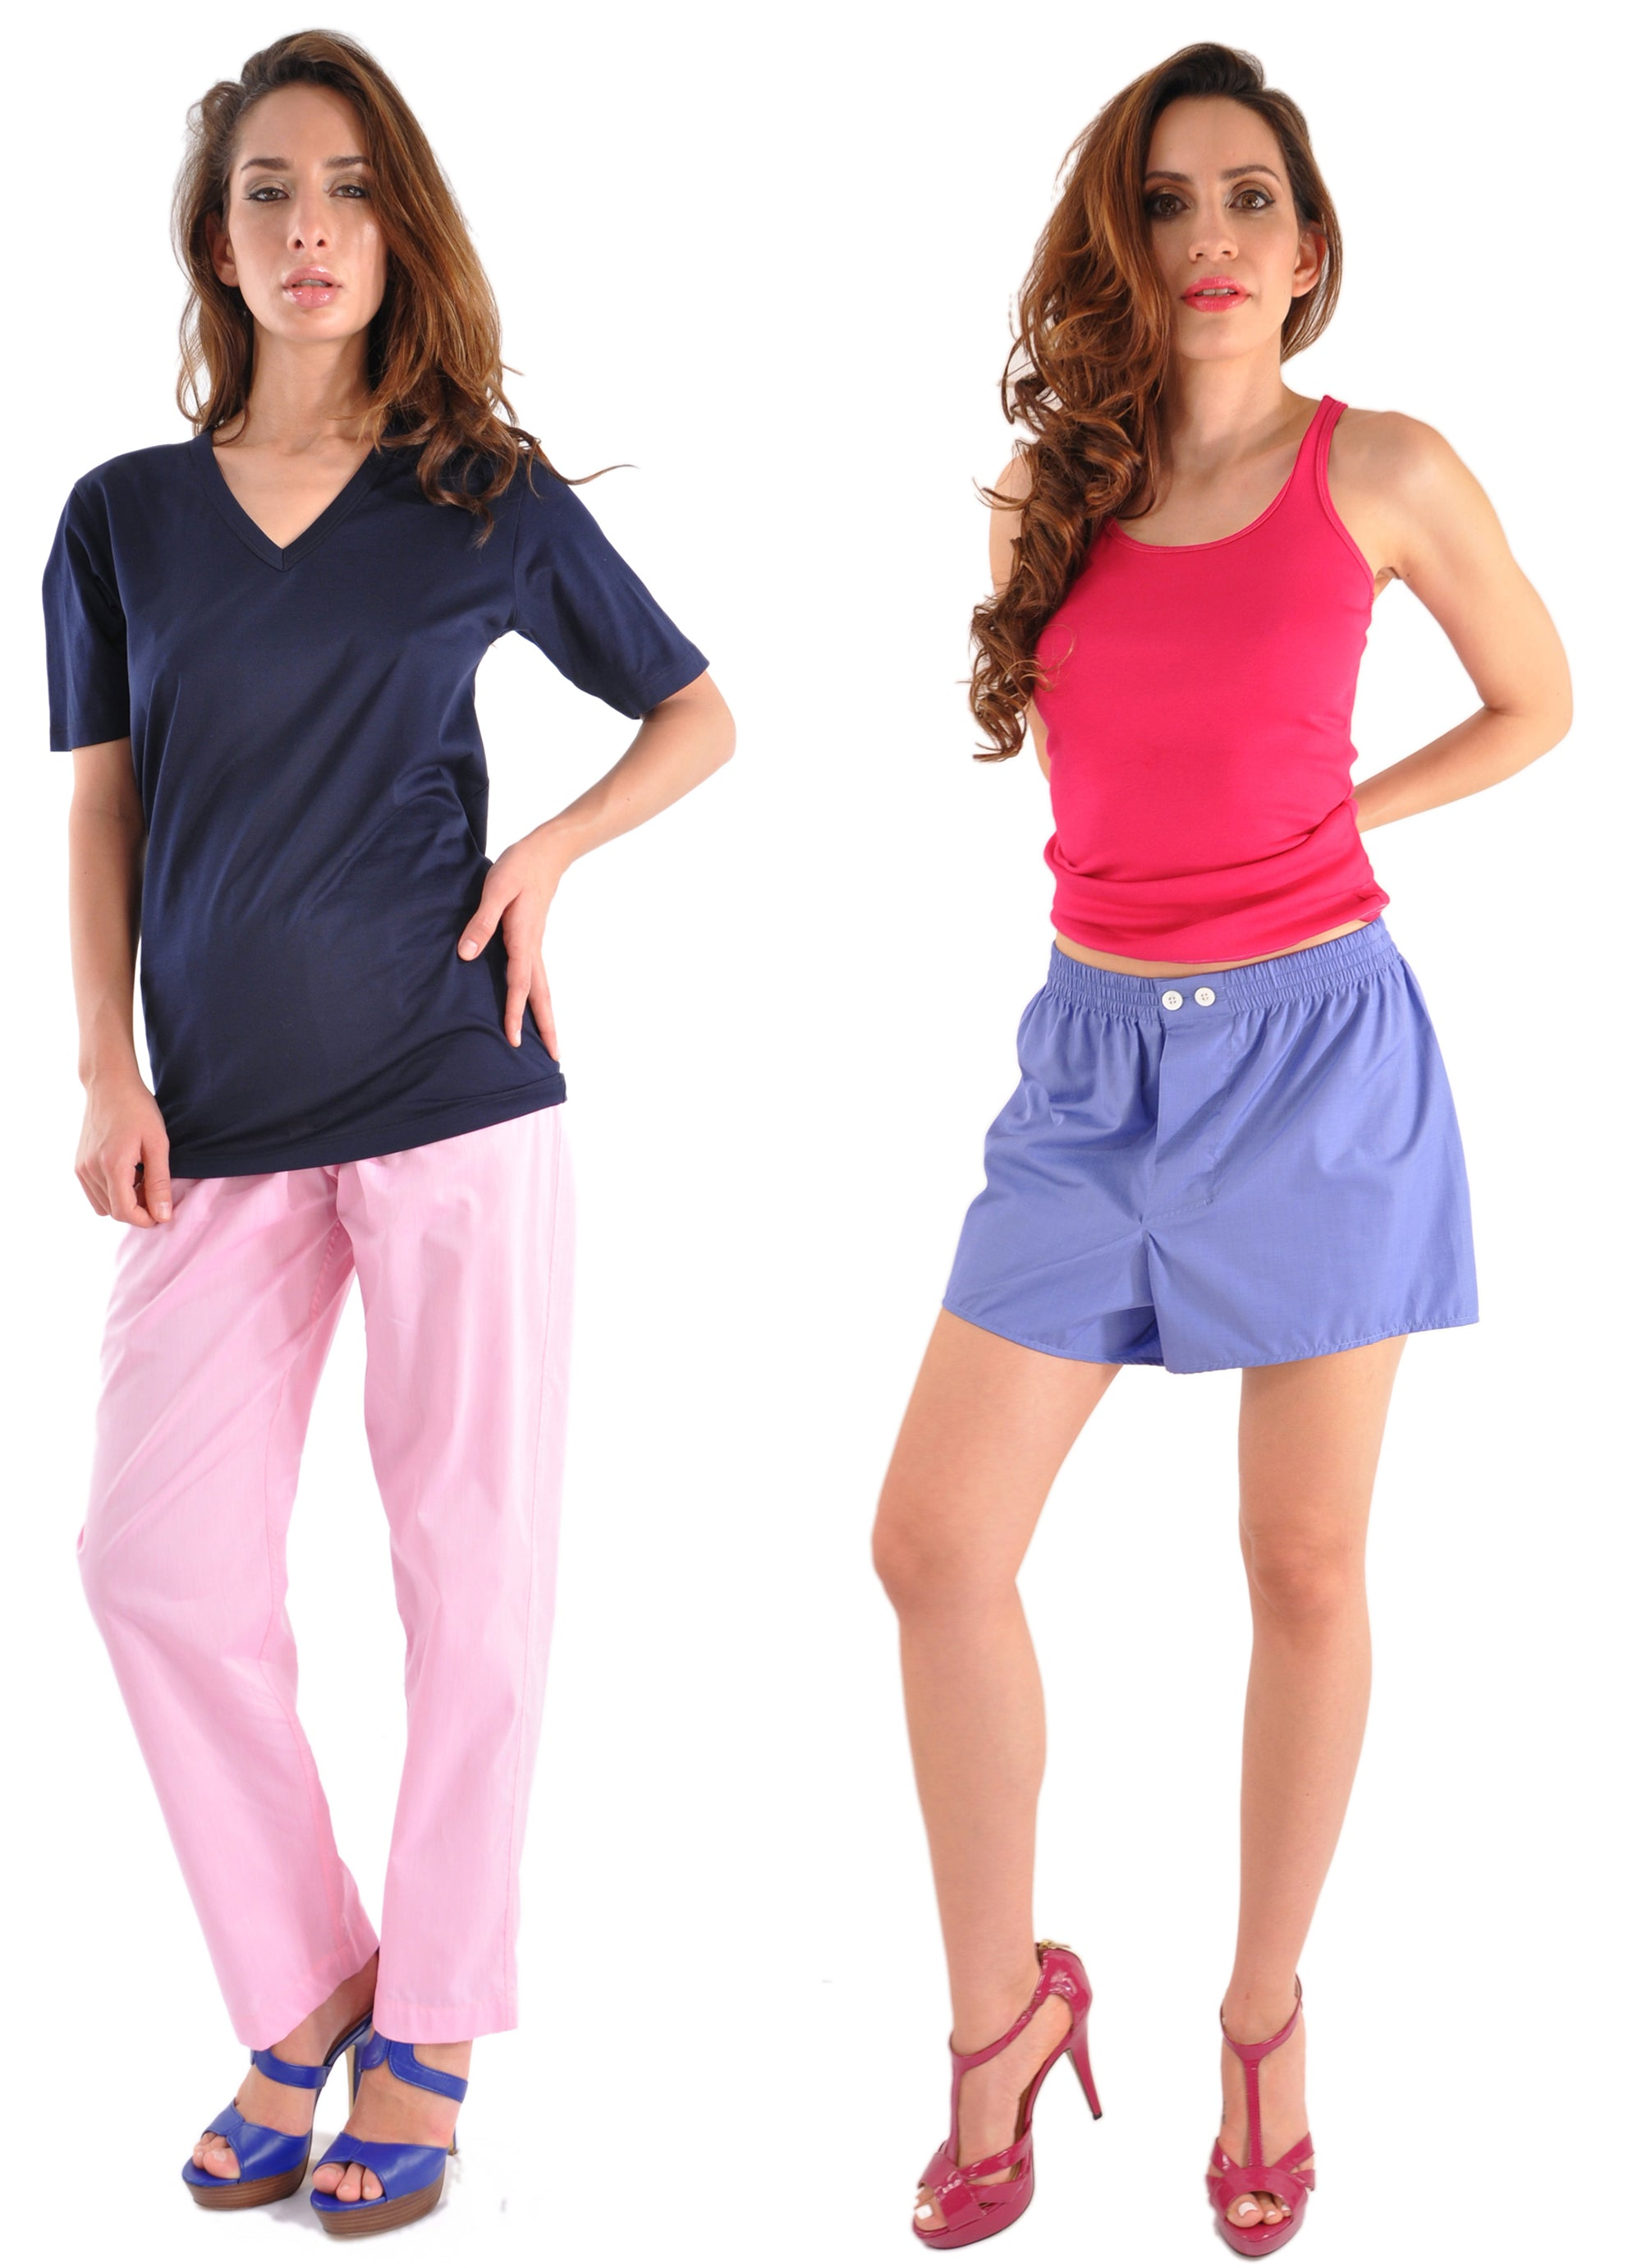 V-Neck Shirts & Boxers - Altogether Too Girl Friendly!